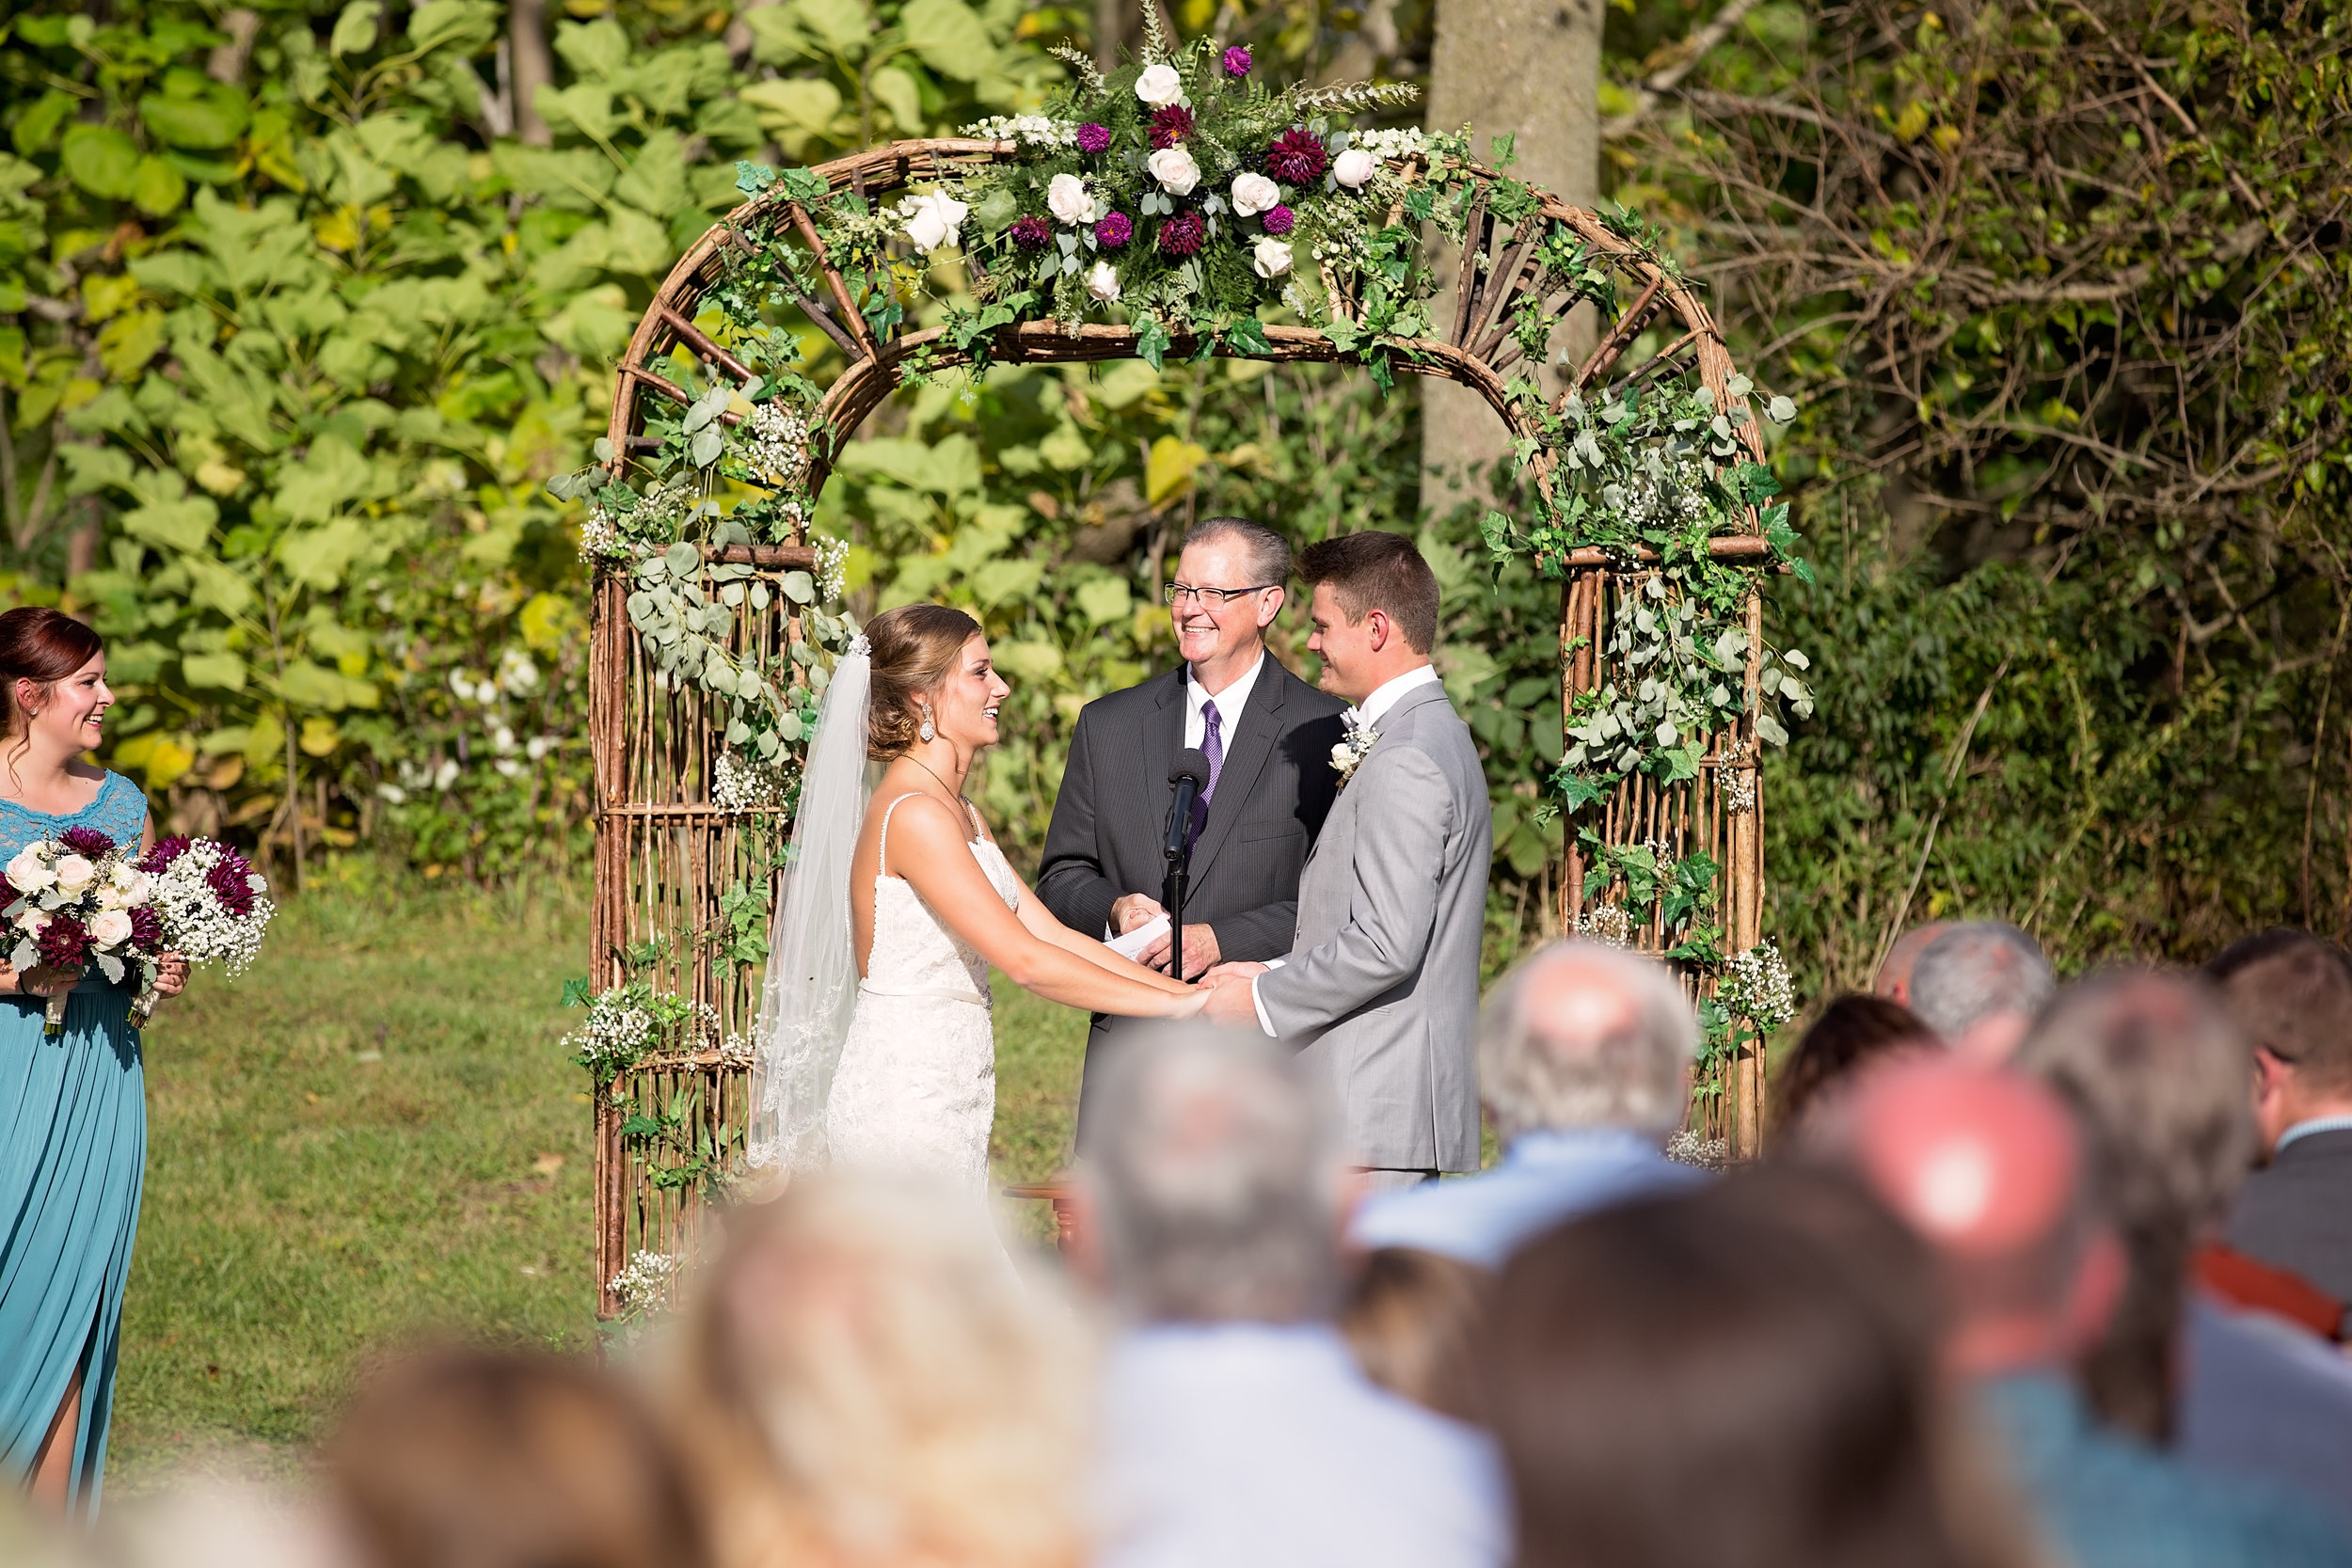 bride and groom saying vows at ceremony